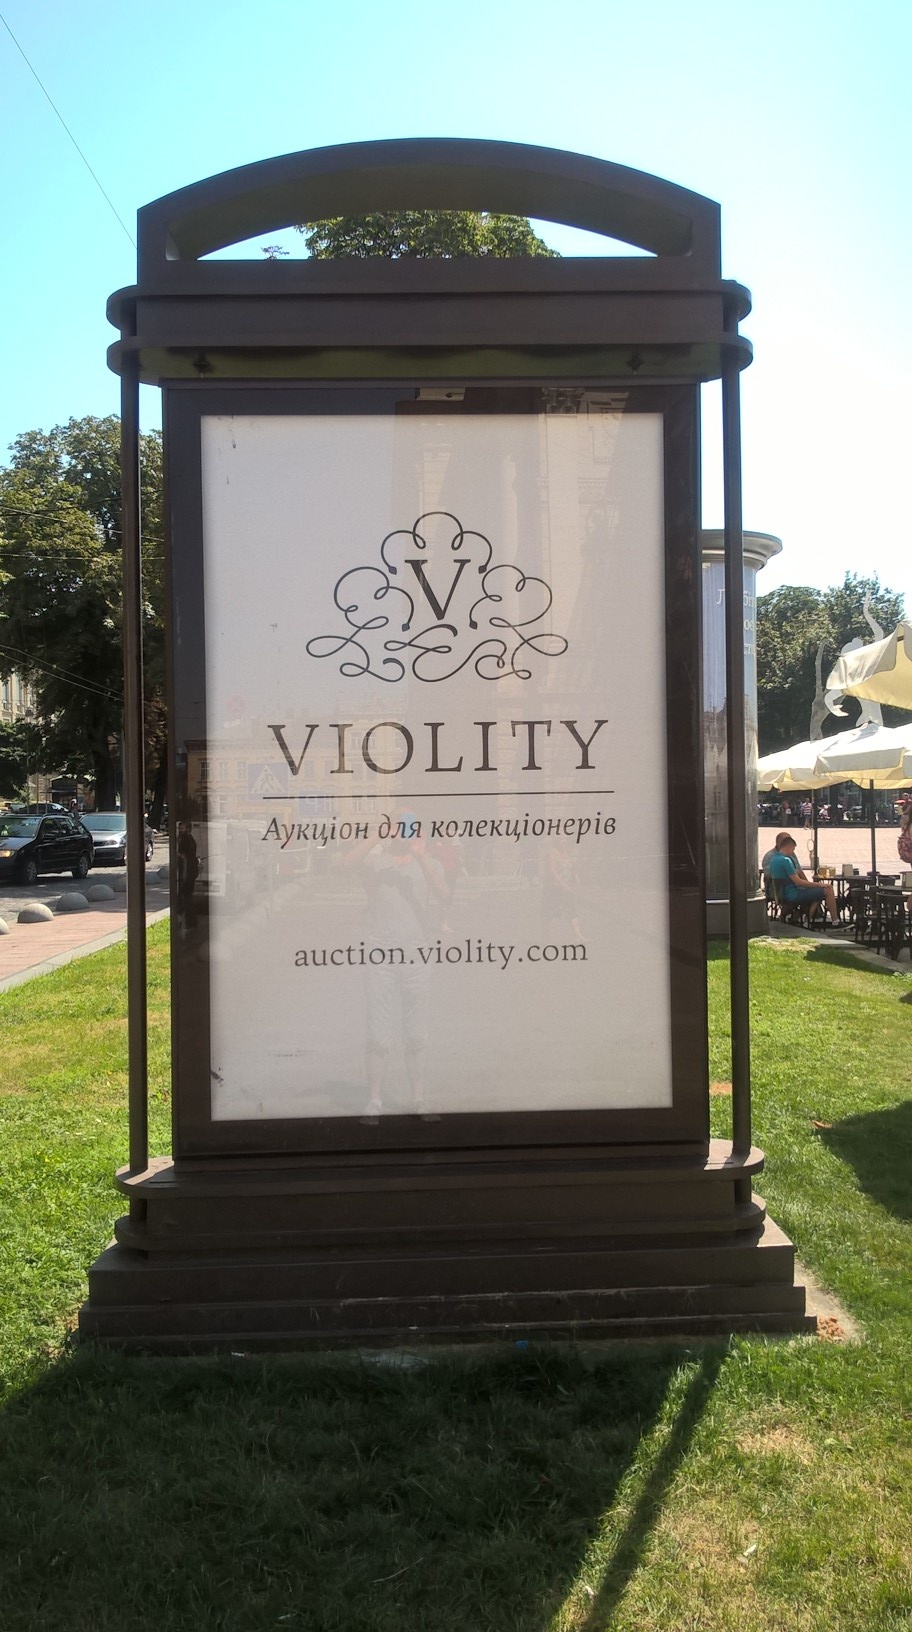 an advert for online auction site Violity, on a scrolling baord in front of a museum in a city centre square, Lviv, Ukraine